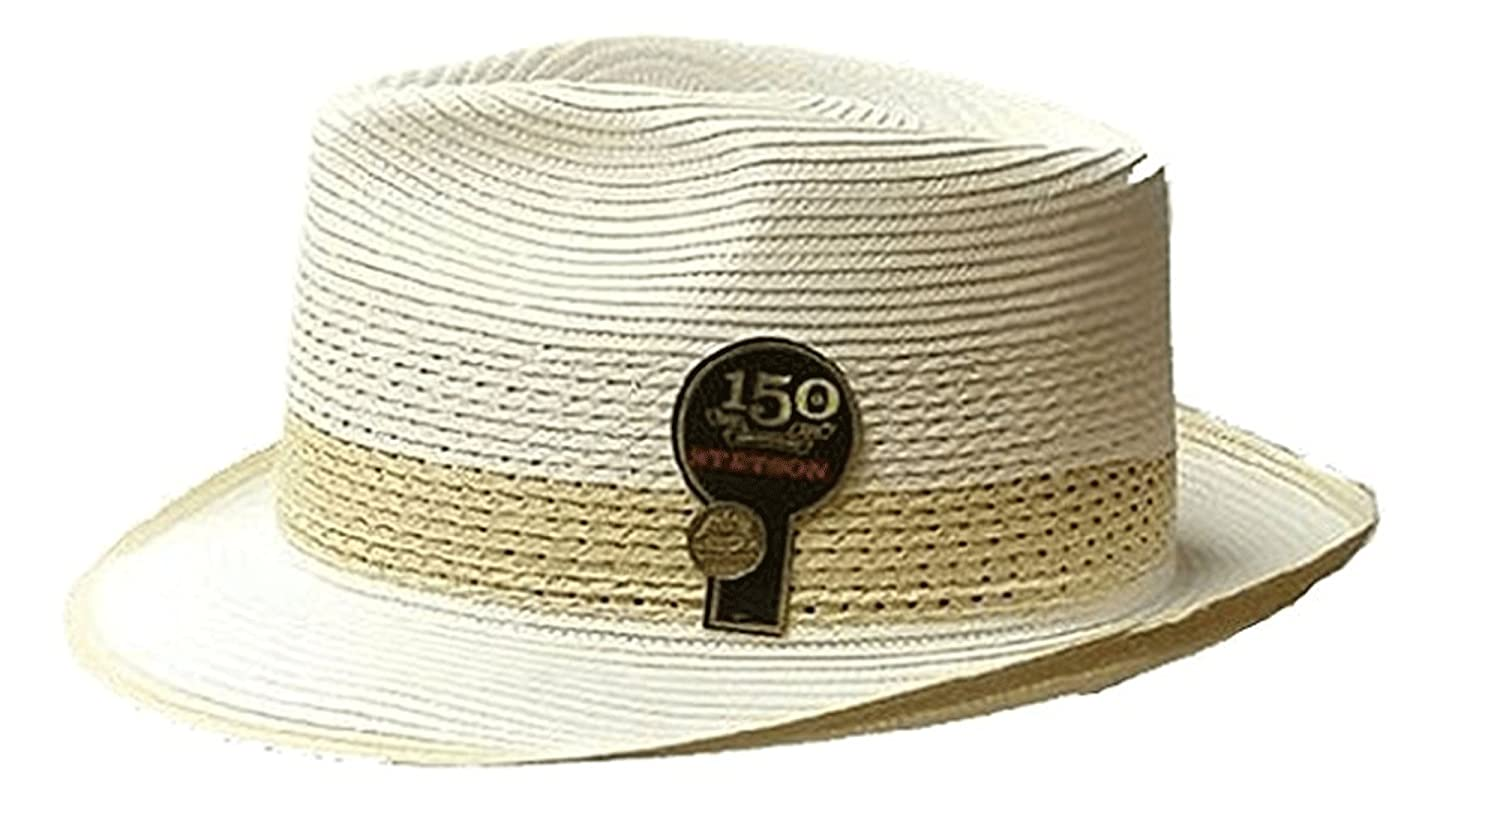 defe267f172 Stetson & Dobbs TSCLWY-3416 Men's Cool Way Milan Straw Fedora Hat, Beige -  XXL: Amazon.co.uk: Clothing